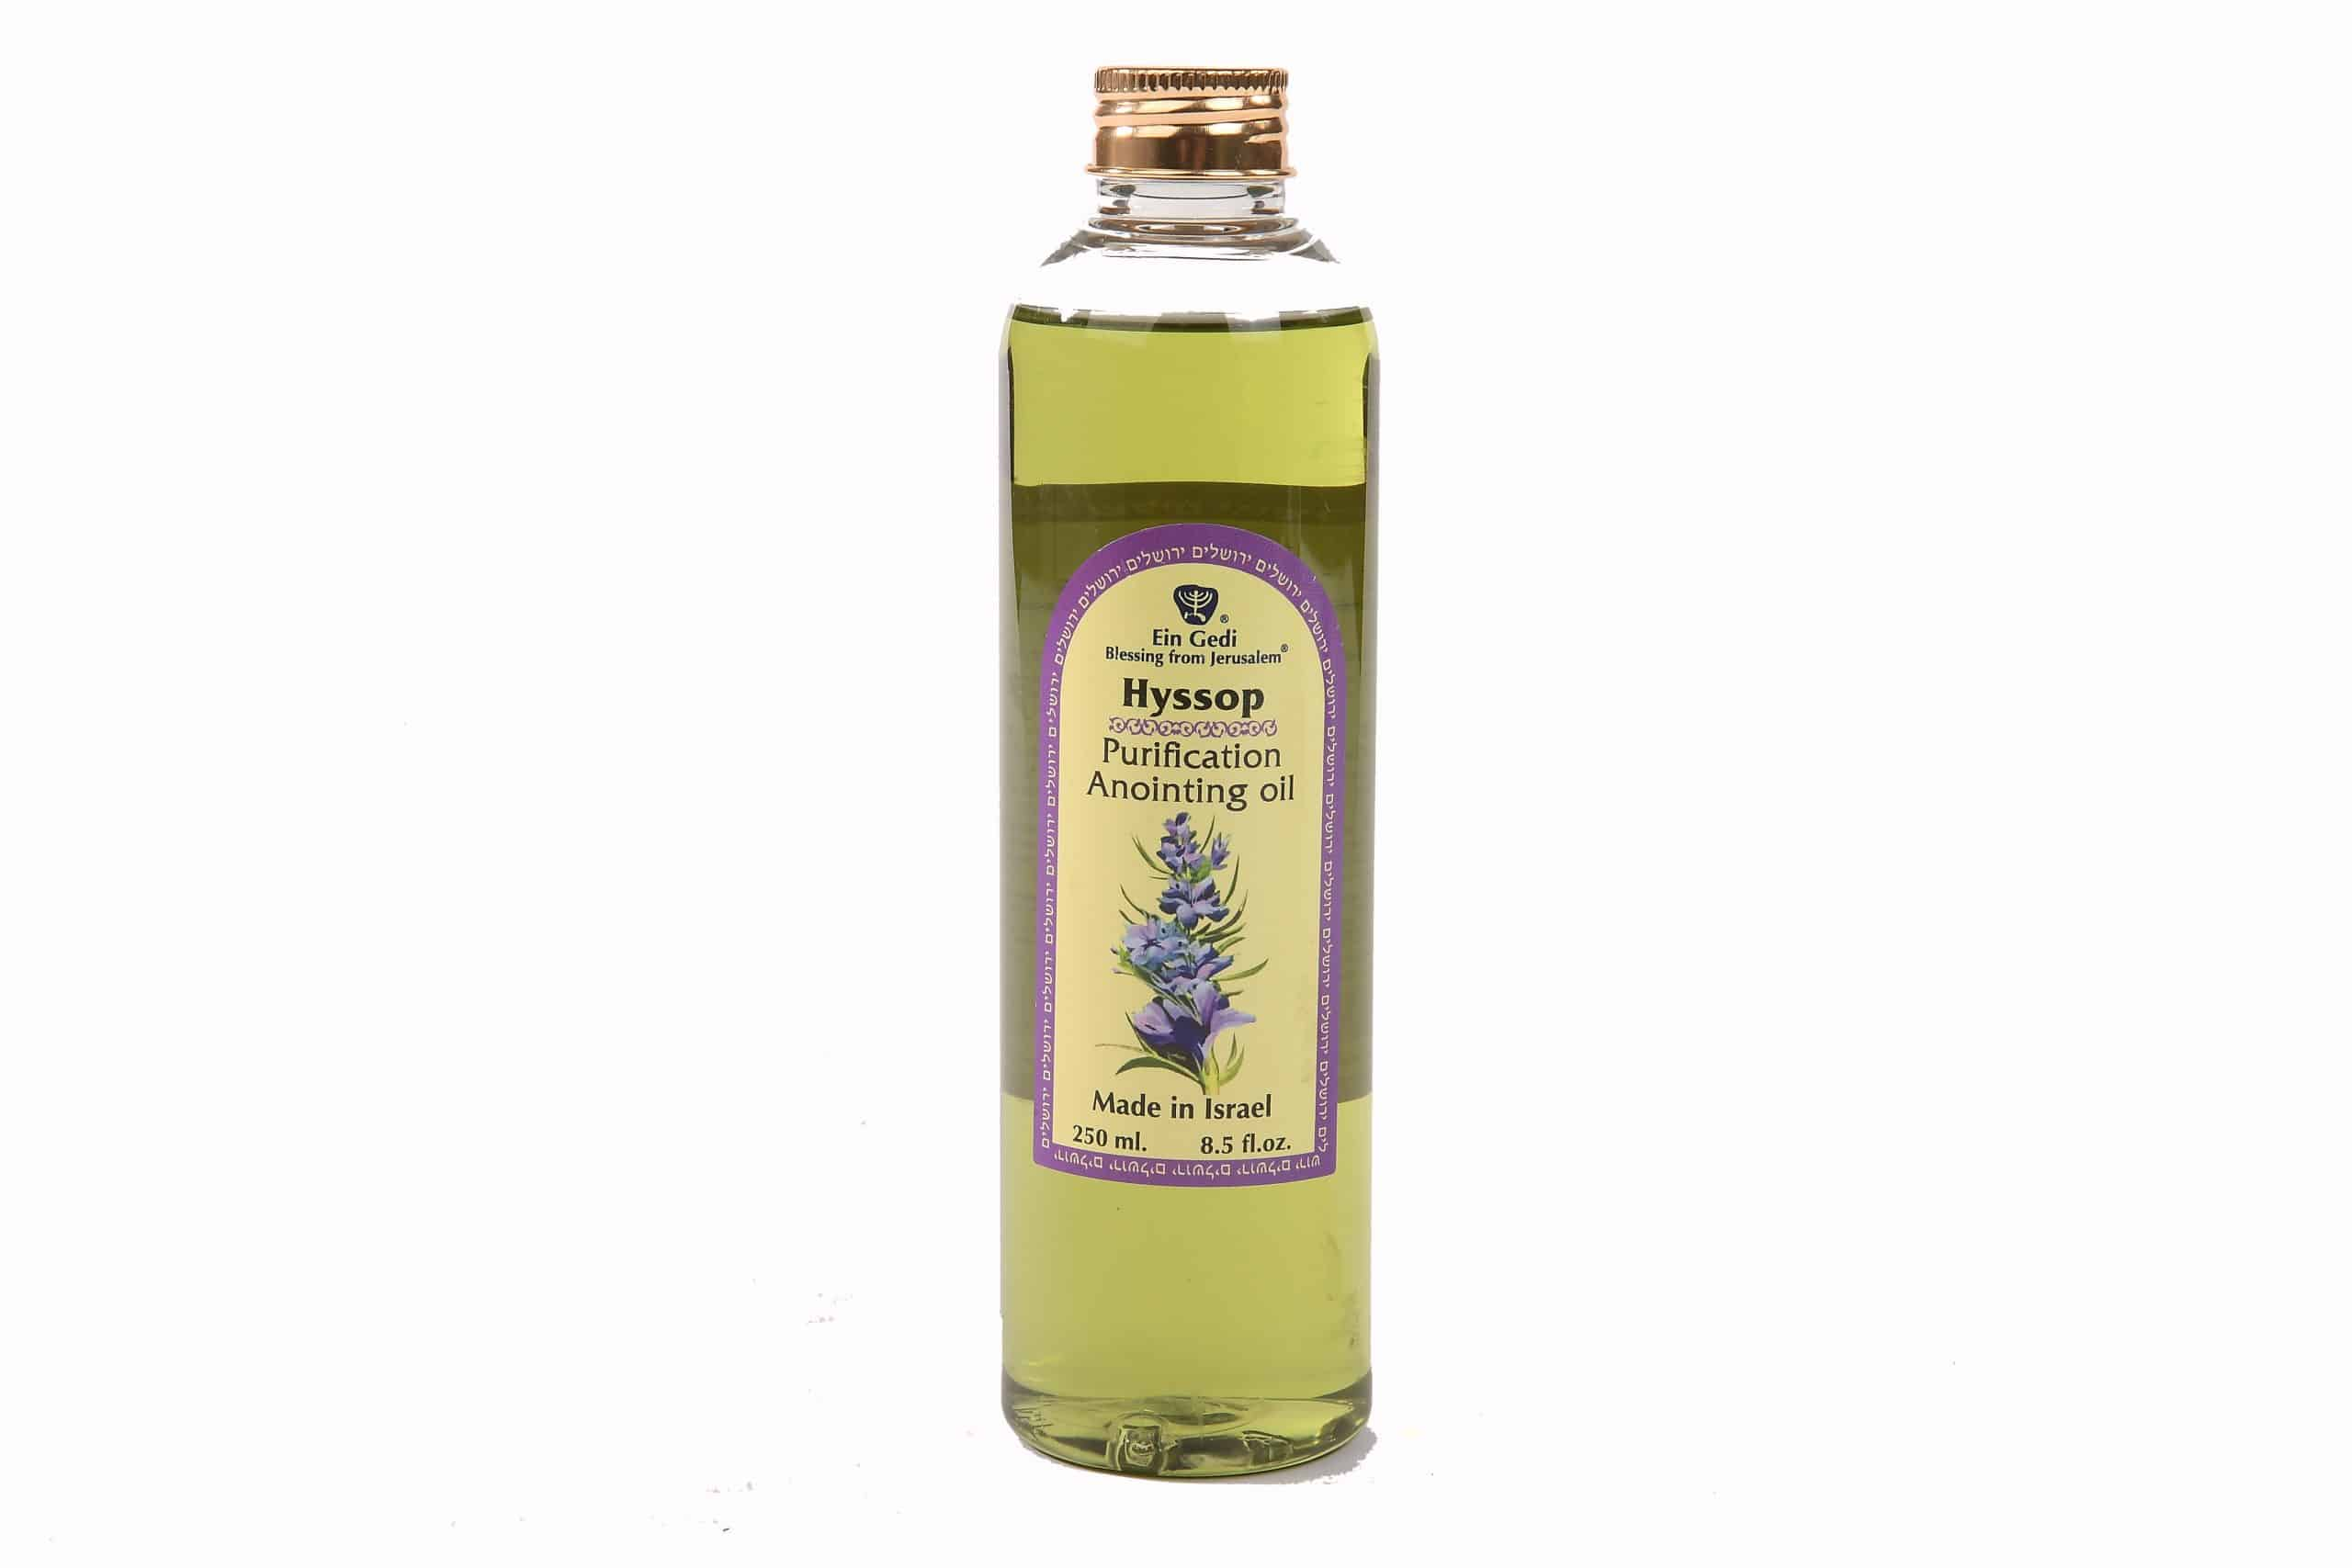 Hyssop Anointing Oil - Spiritual Purification - 250ml